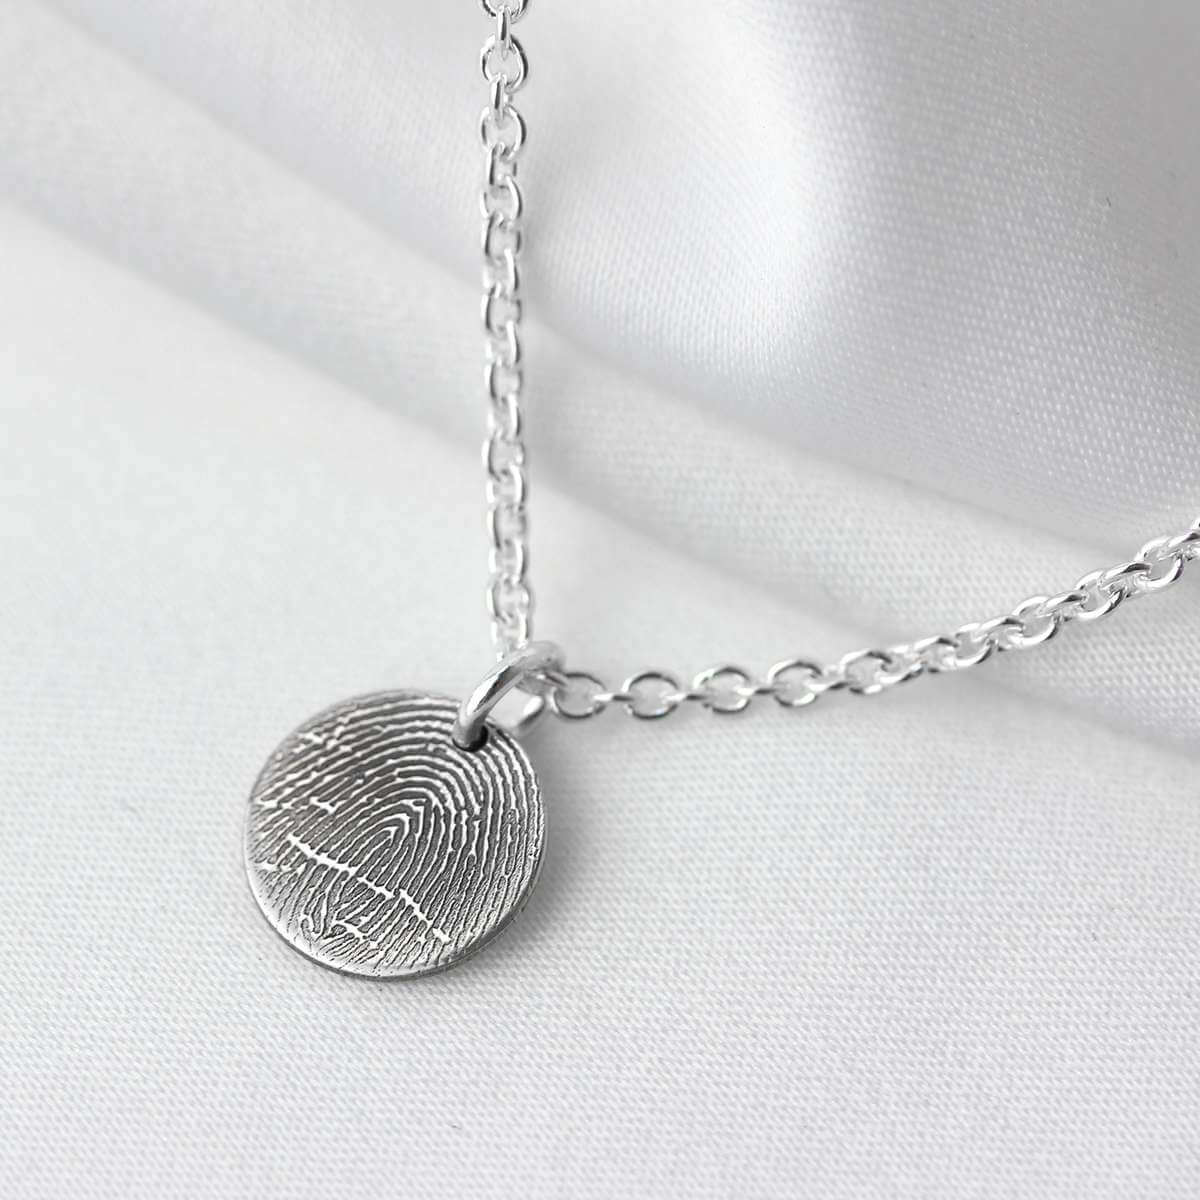 Bespoke Sterling Silver 13mm Fingerprint Necklace 16-24 Inches